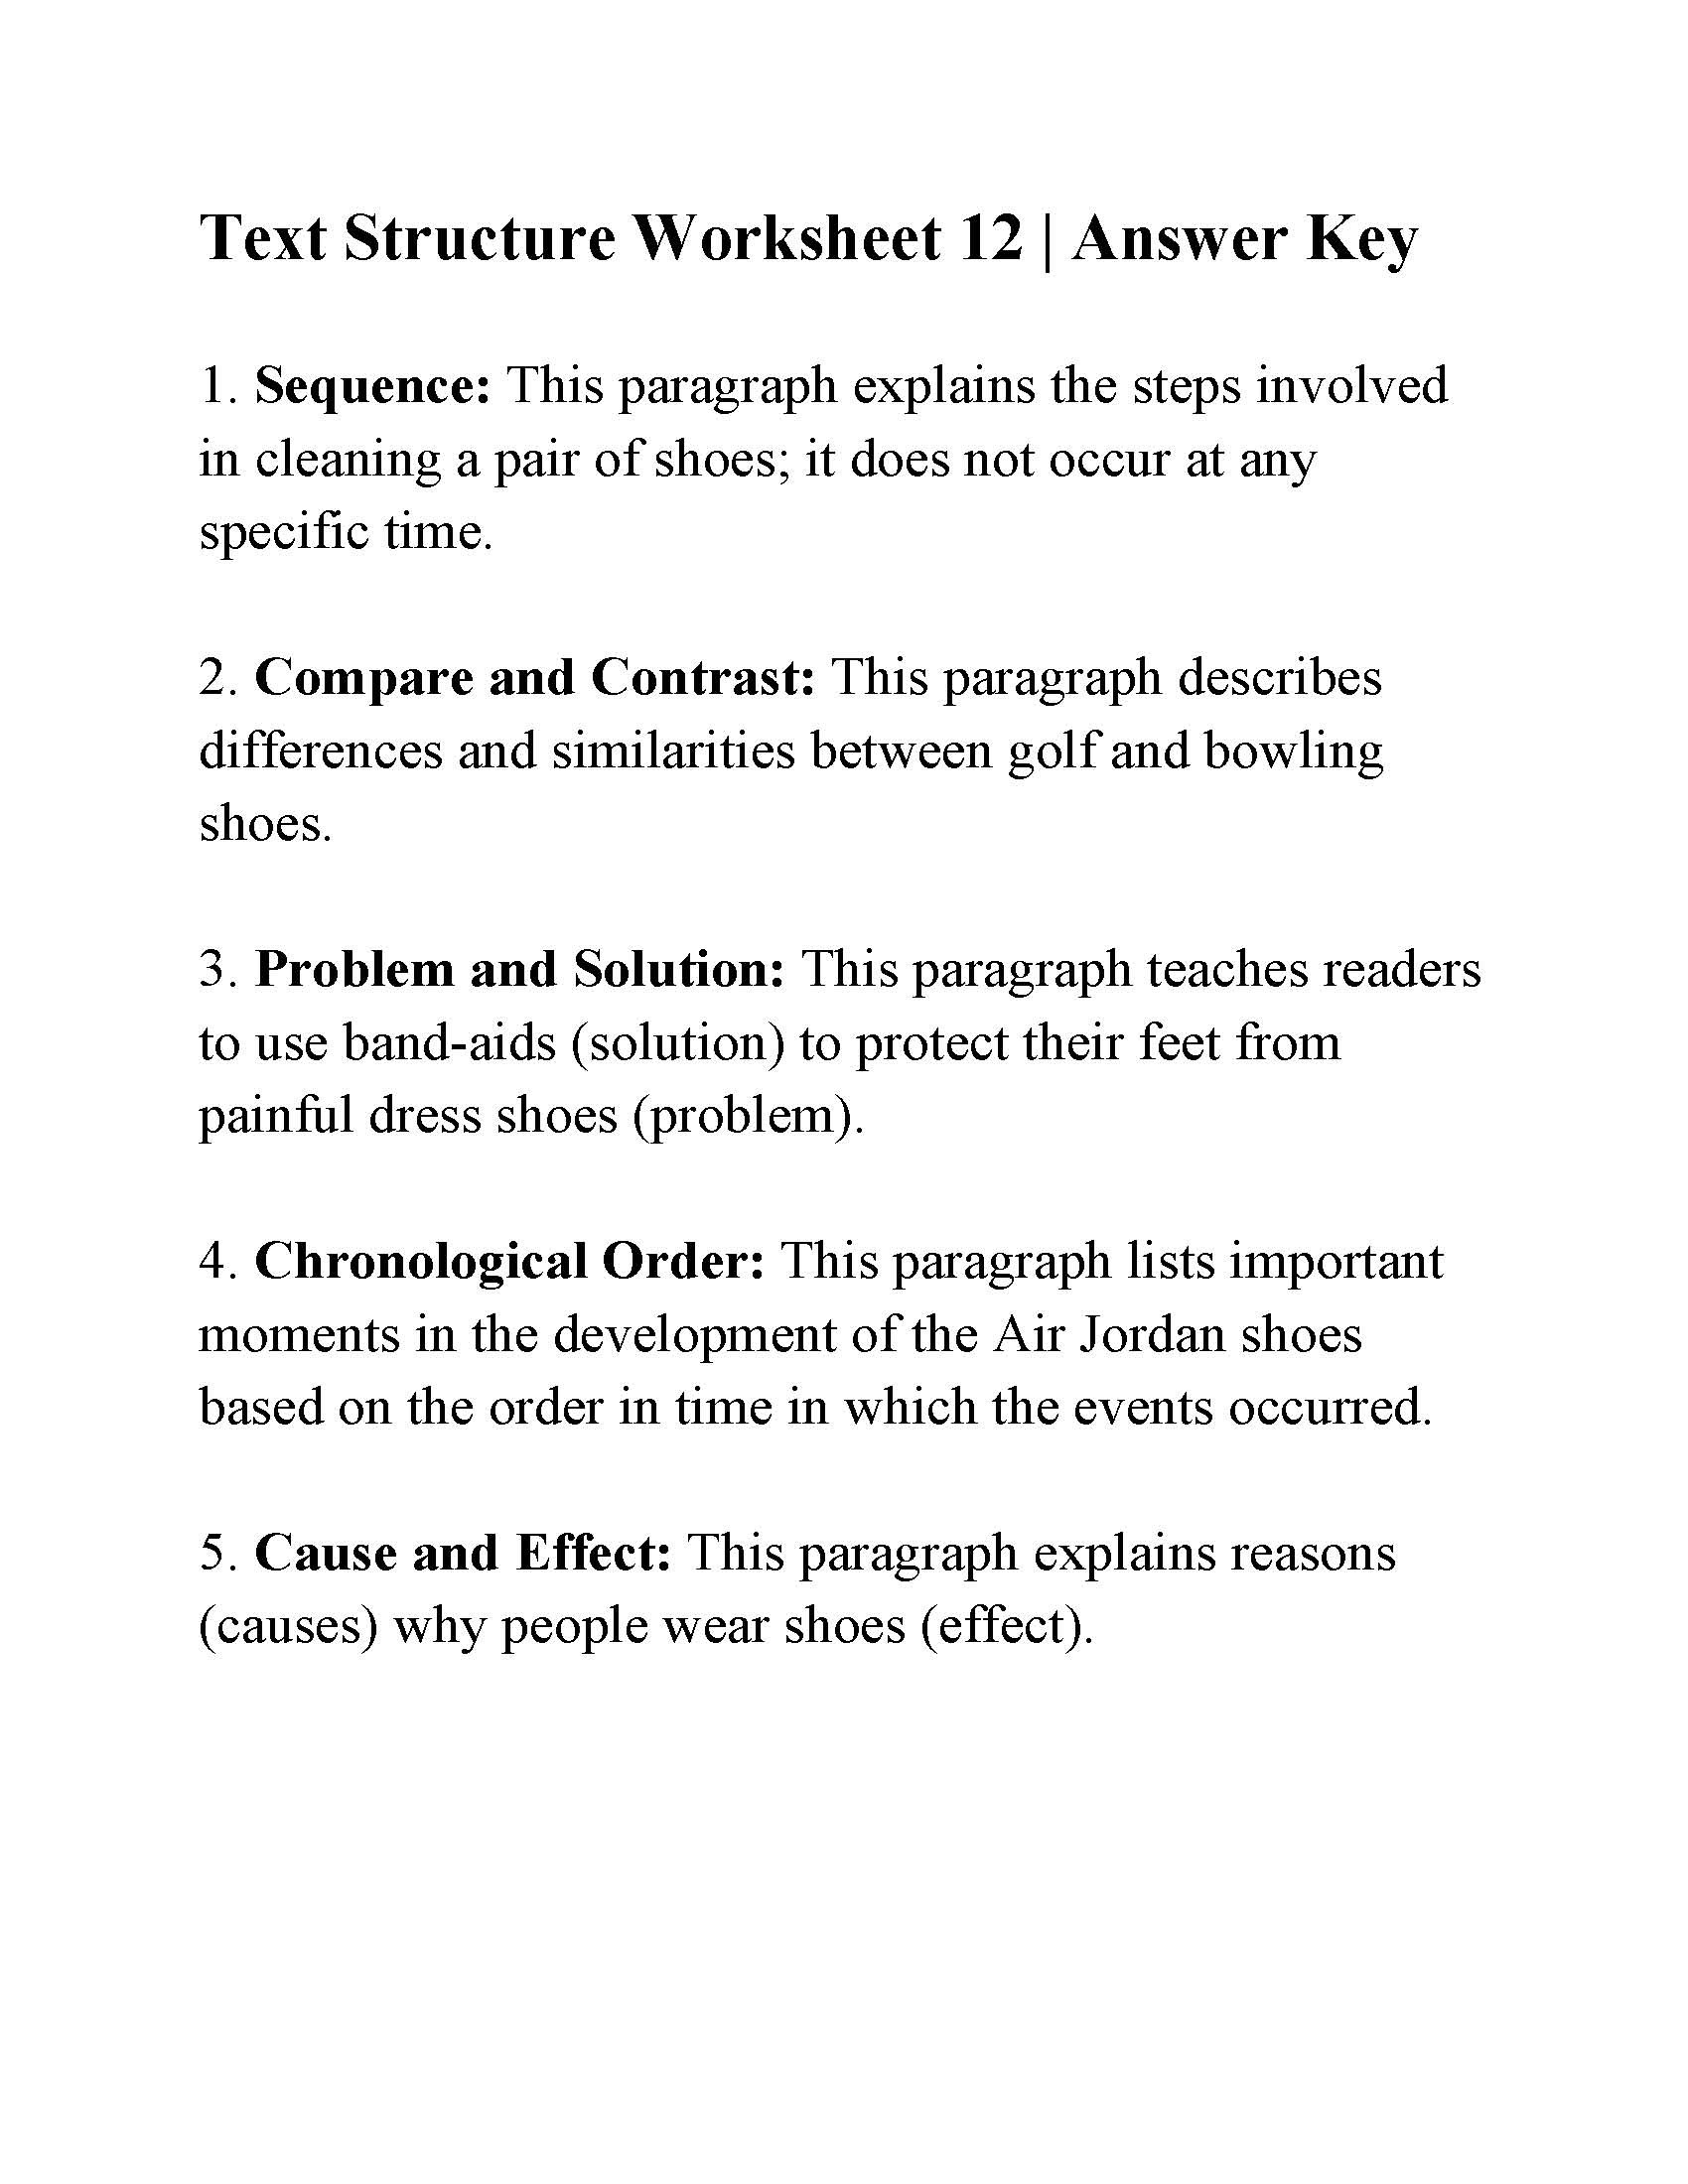 Text Structure 4th Grade Worksheets Text Structure Worksheet Answers Worksheets Math Sum solver